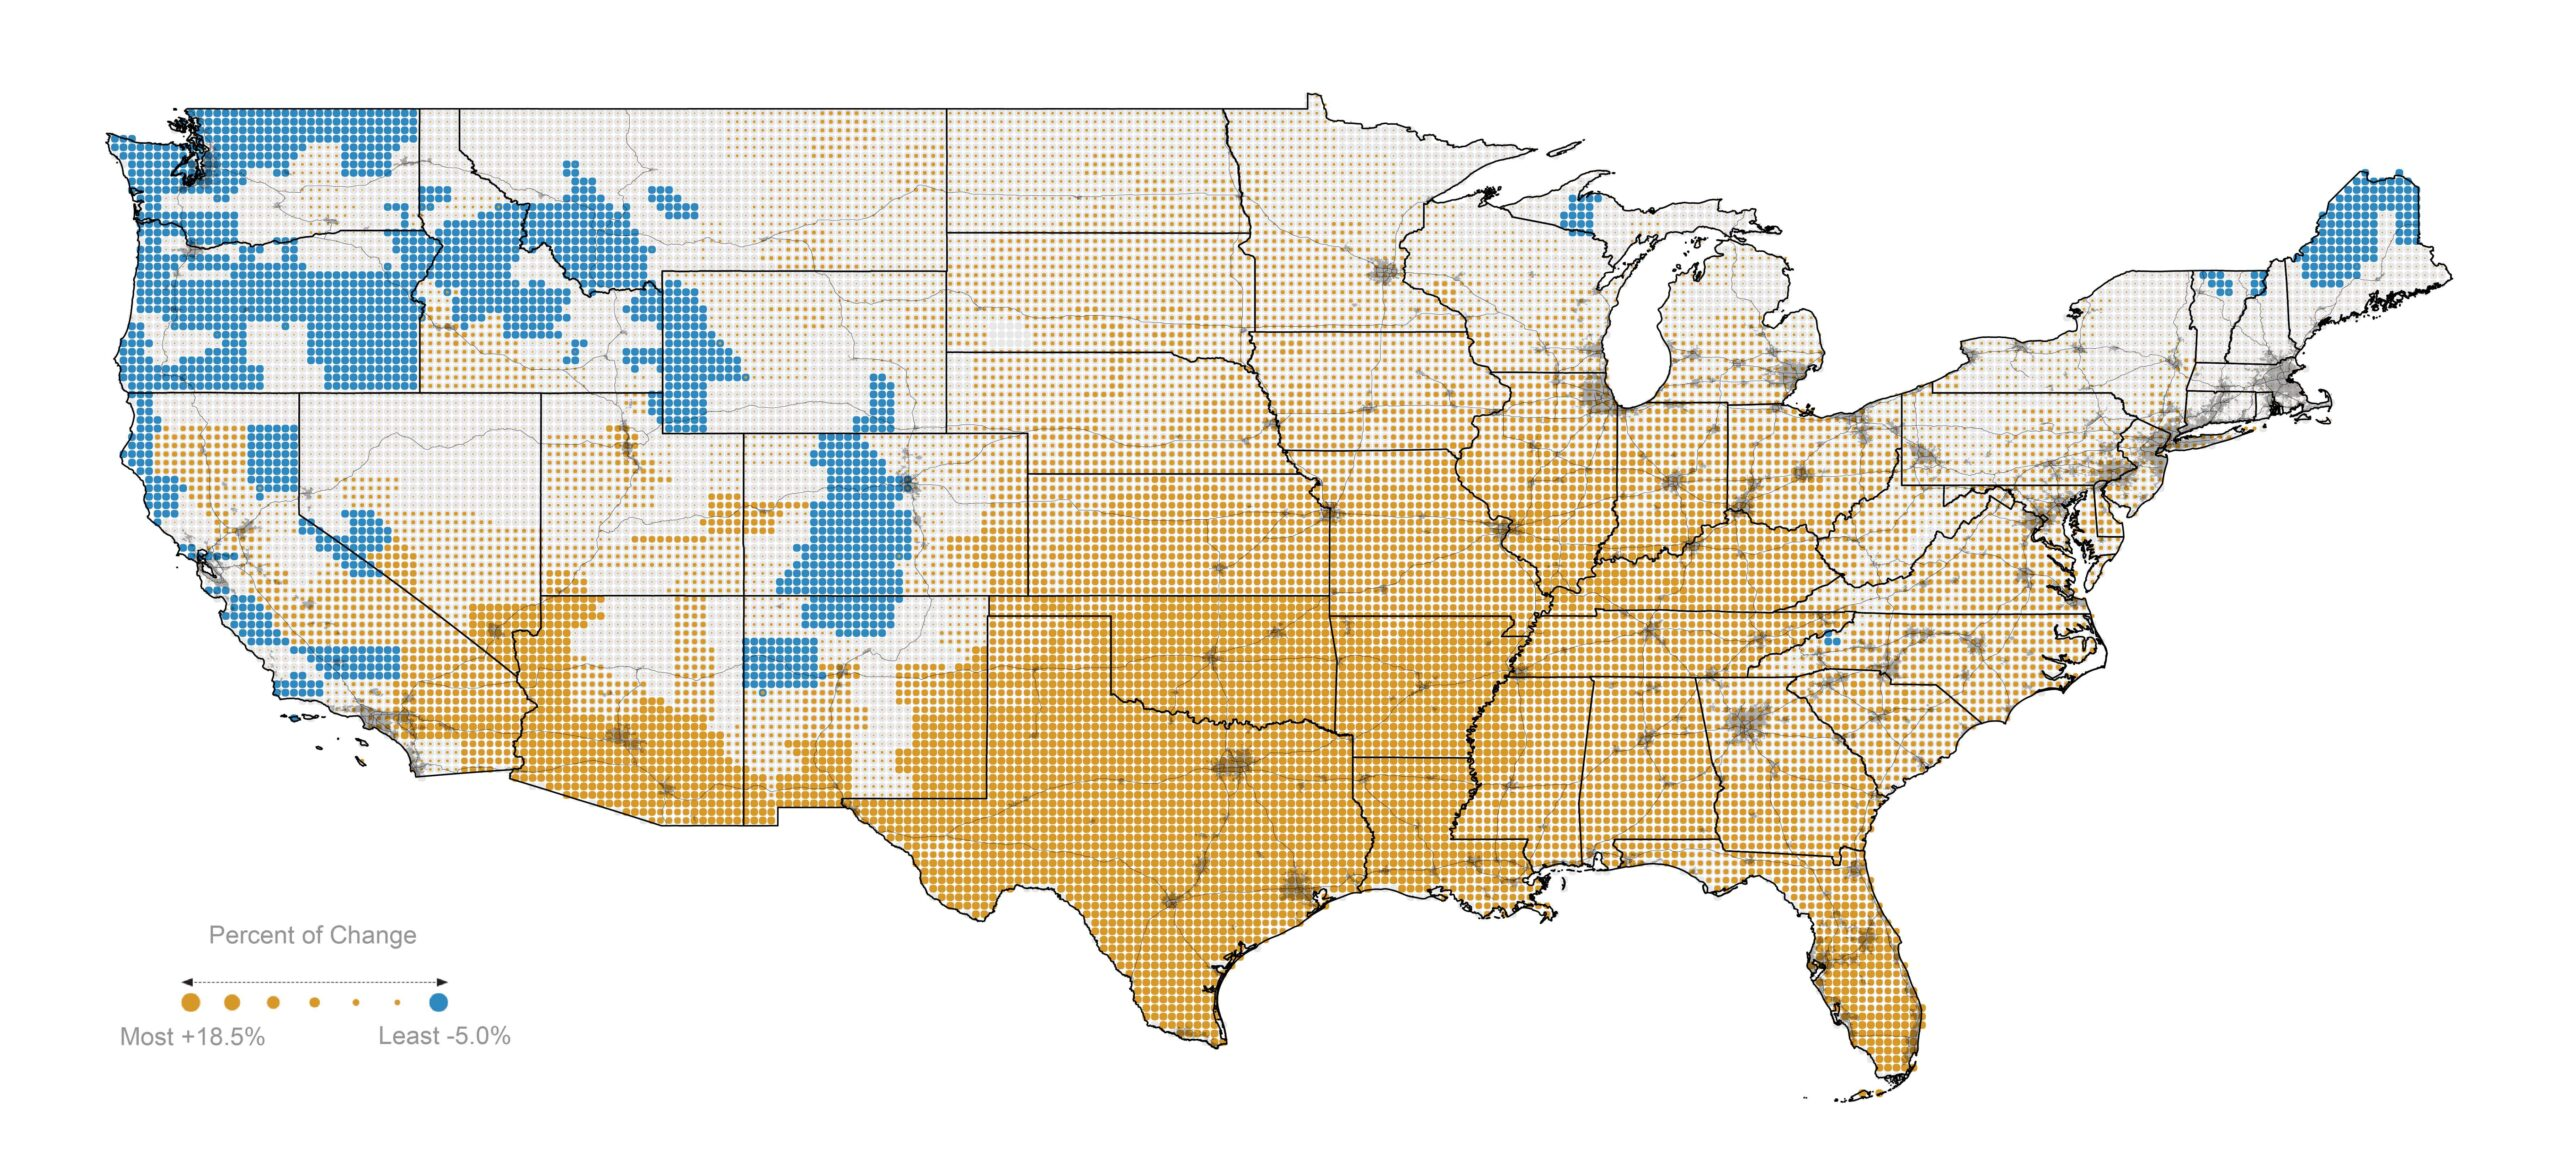 Map of predicted energy demand changes in the US lower 48